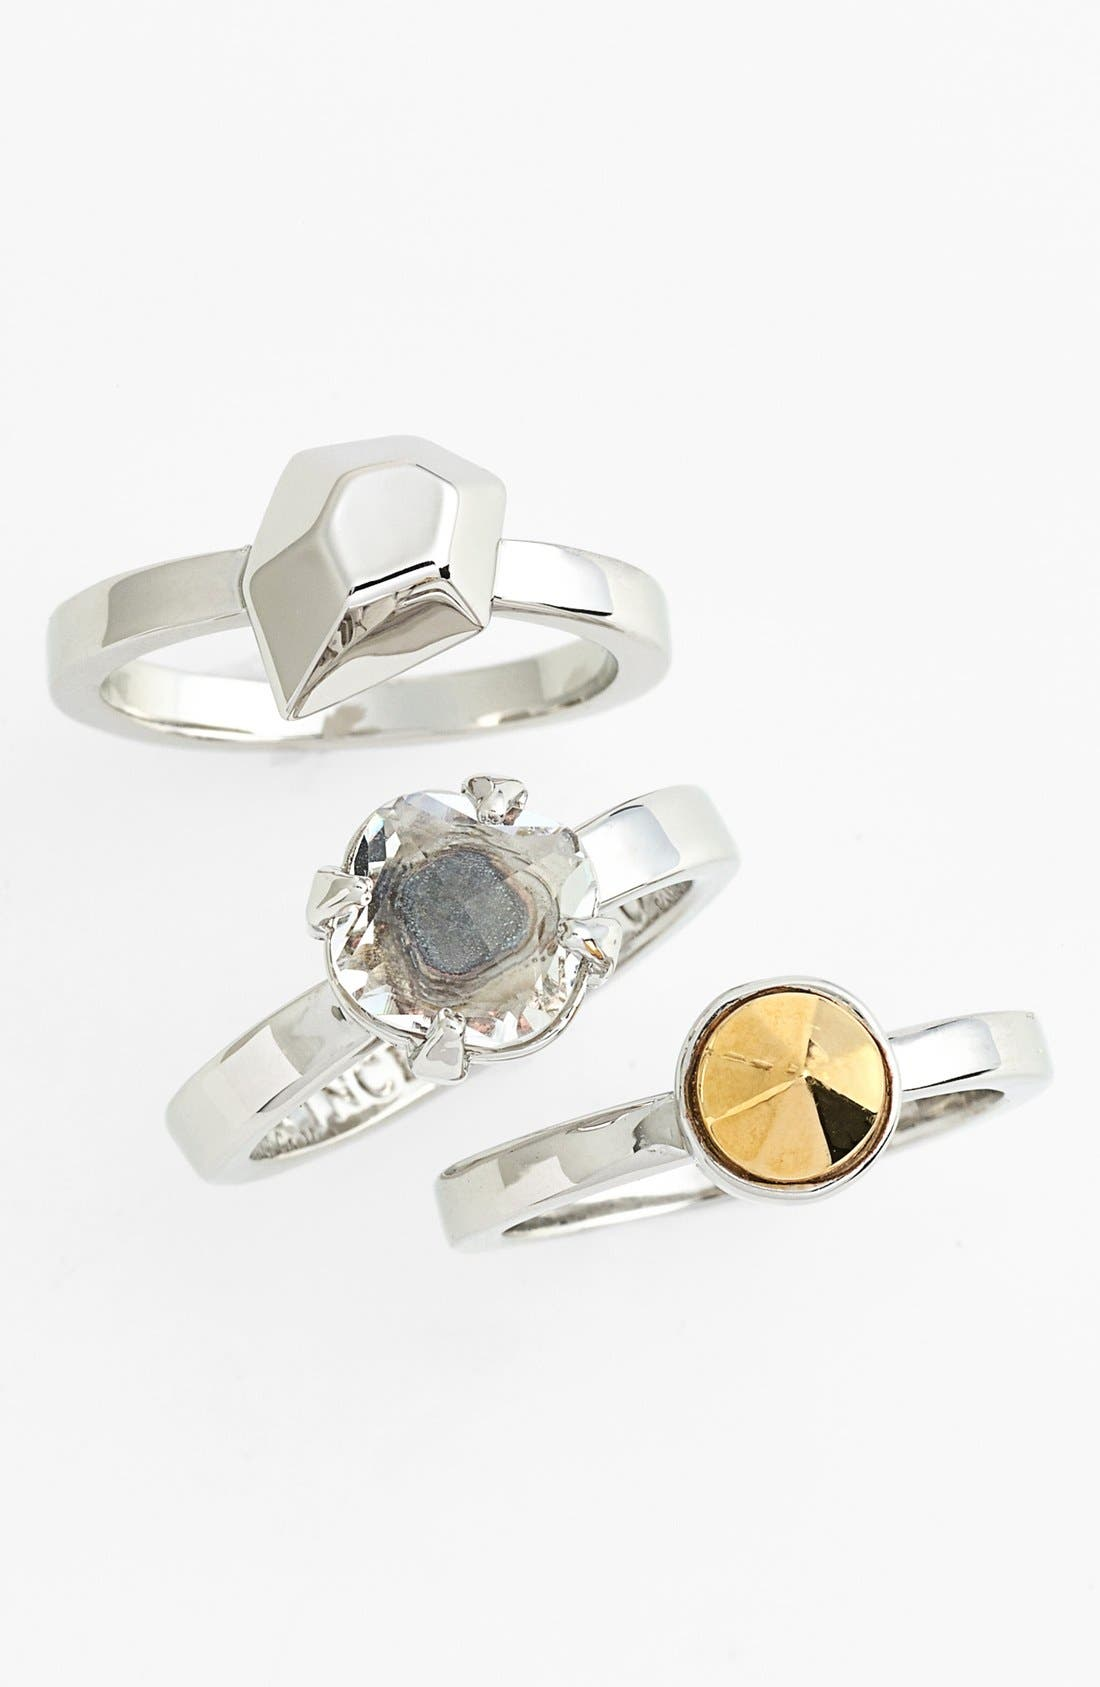 Main Image - Vince Camuto 'Caviar Dreams' Stackable Rings (Set of 3) (Nordstrom Exclusive)